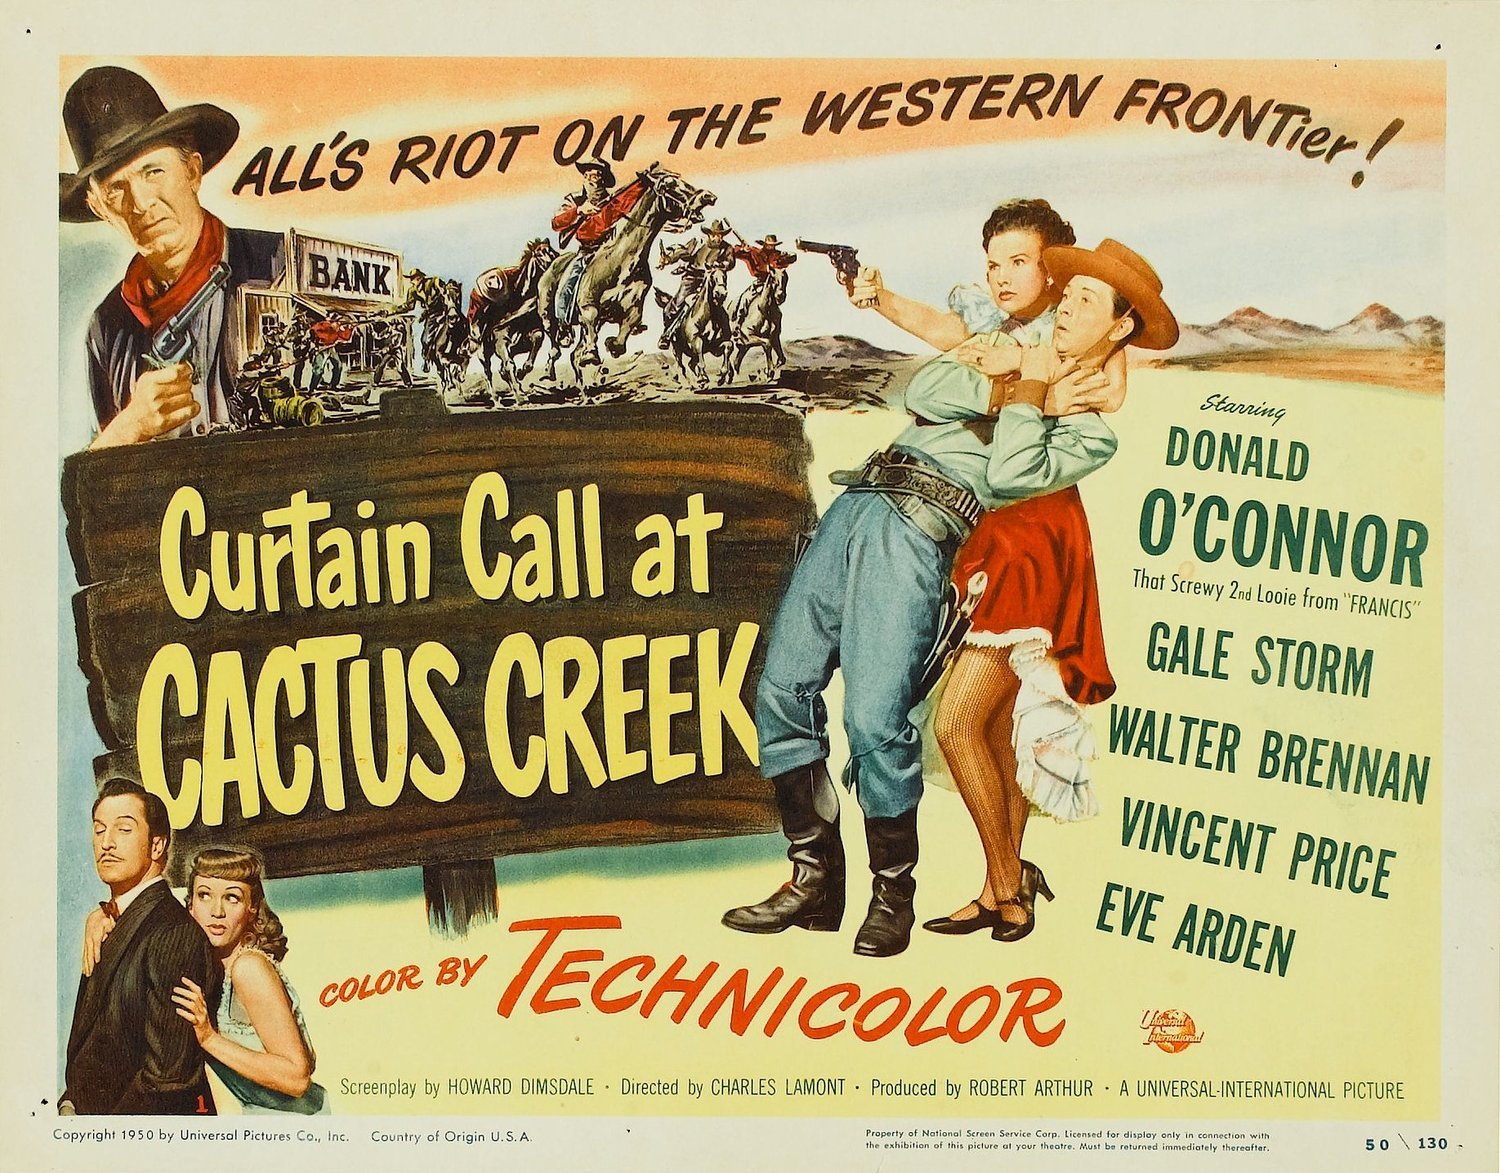 Curtain Call at Cactus Creek (1950)